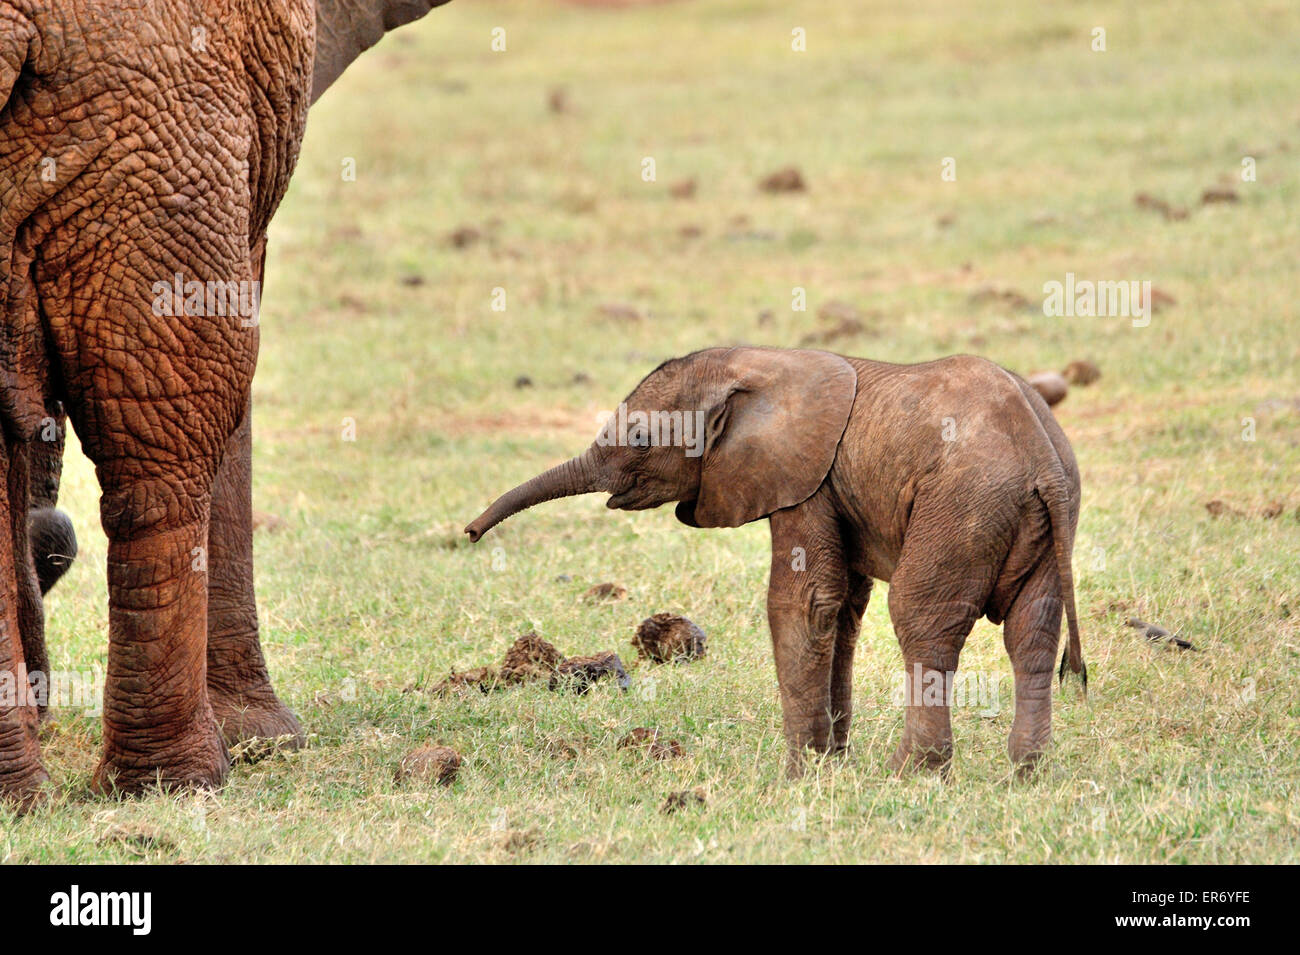 Young playful Elephant Baby - Stock Image